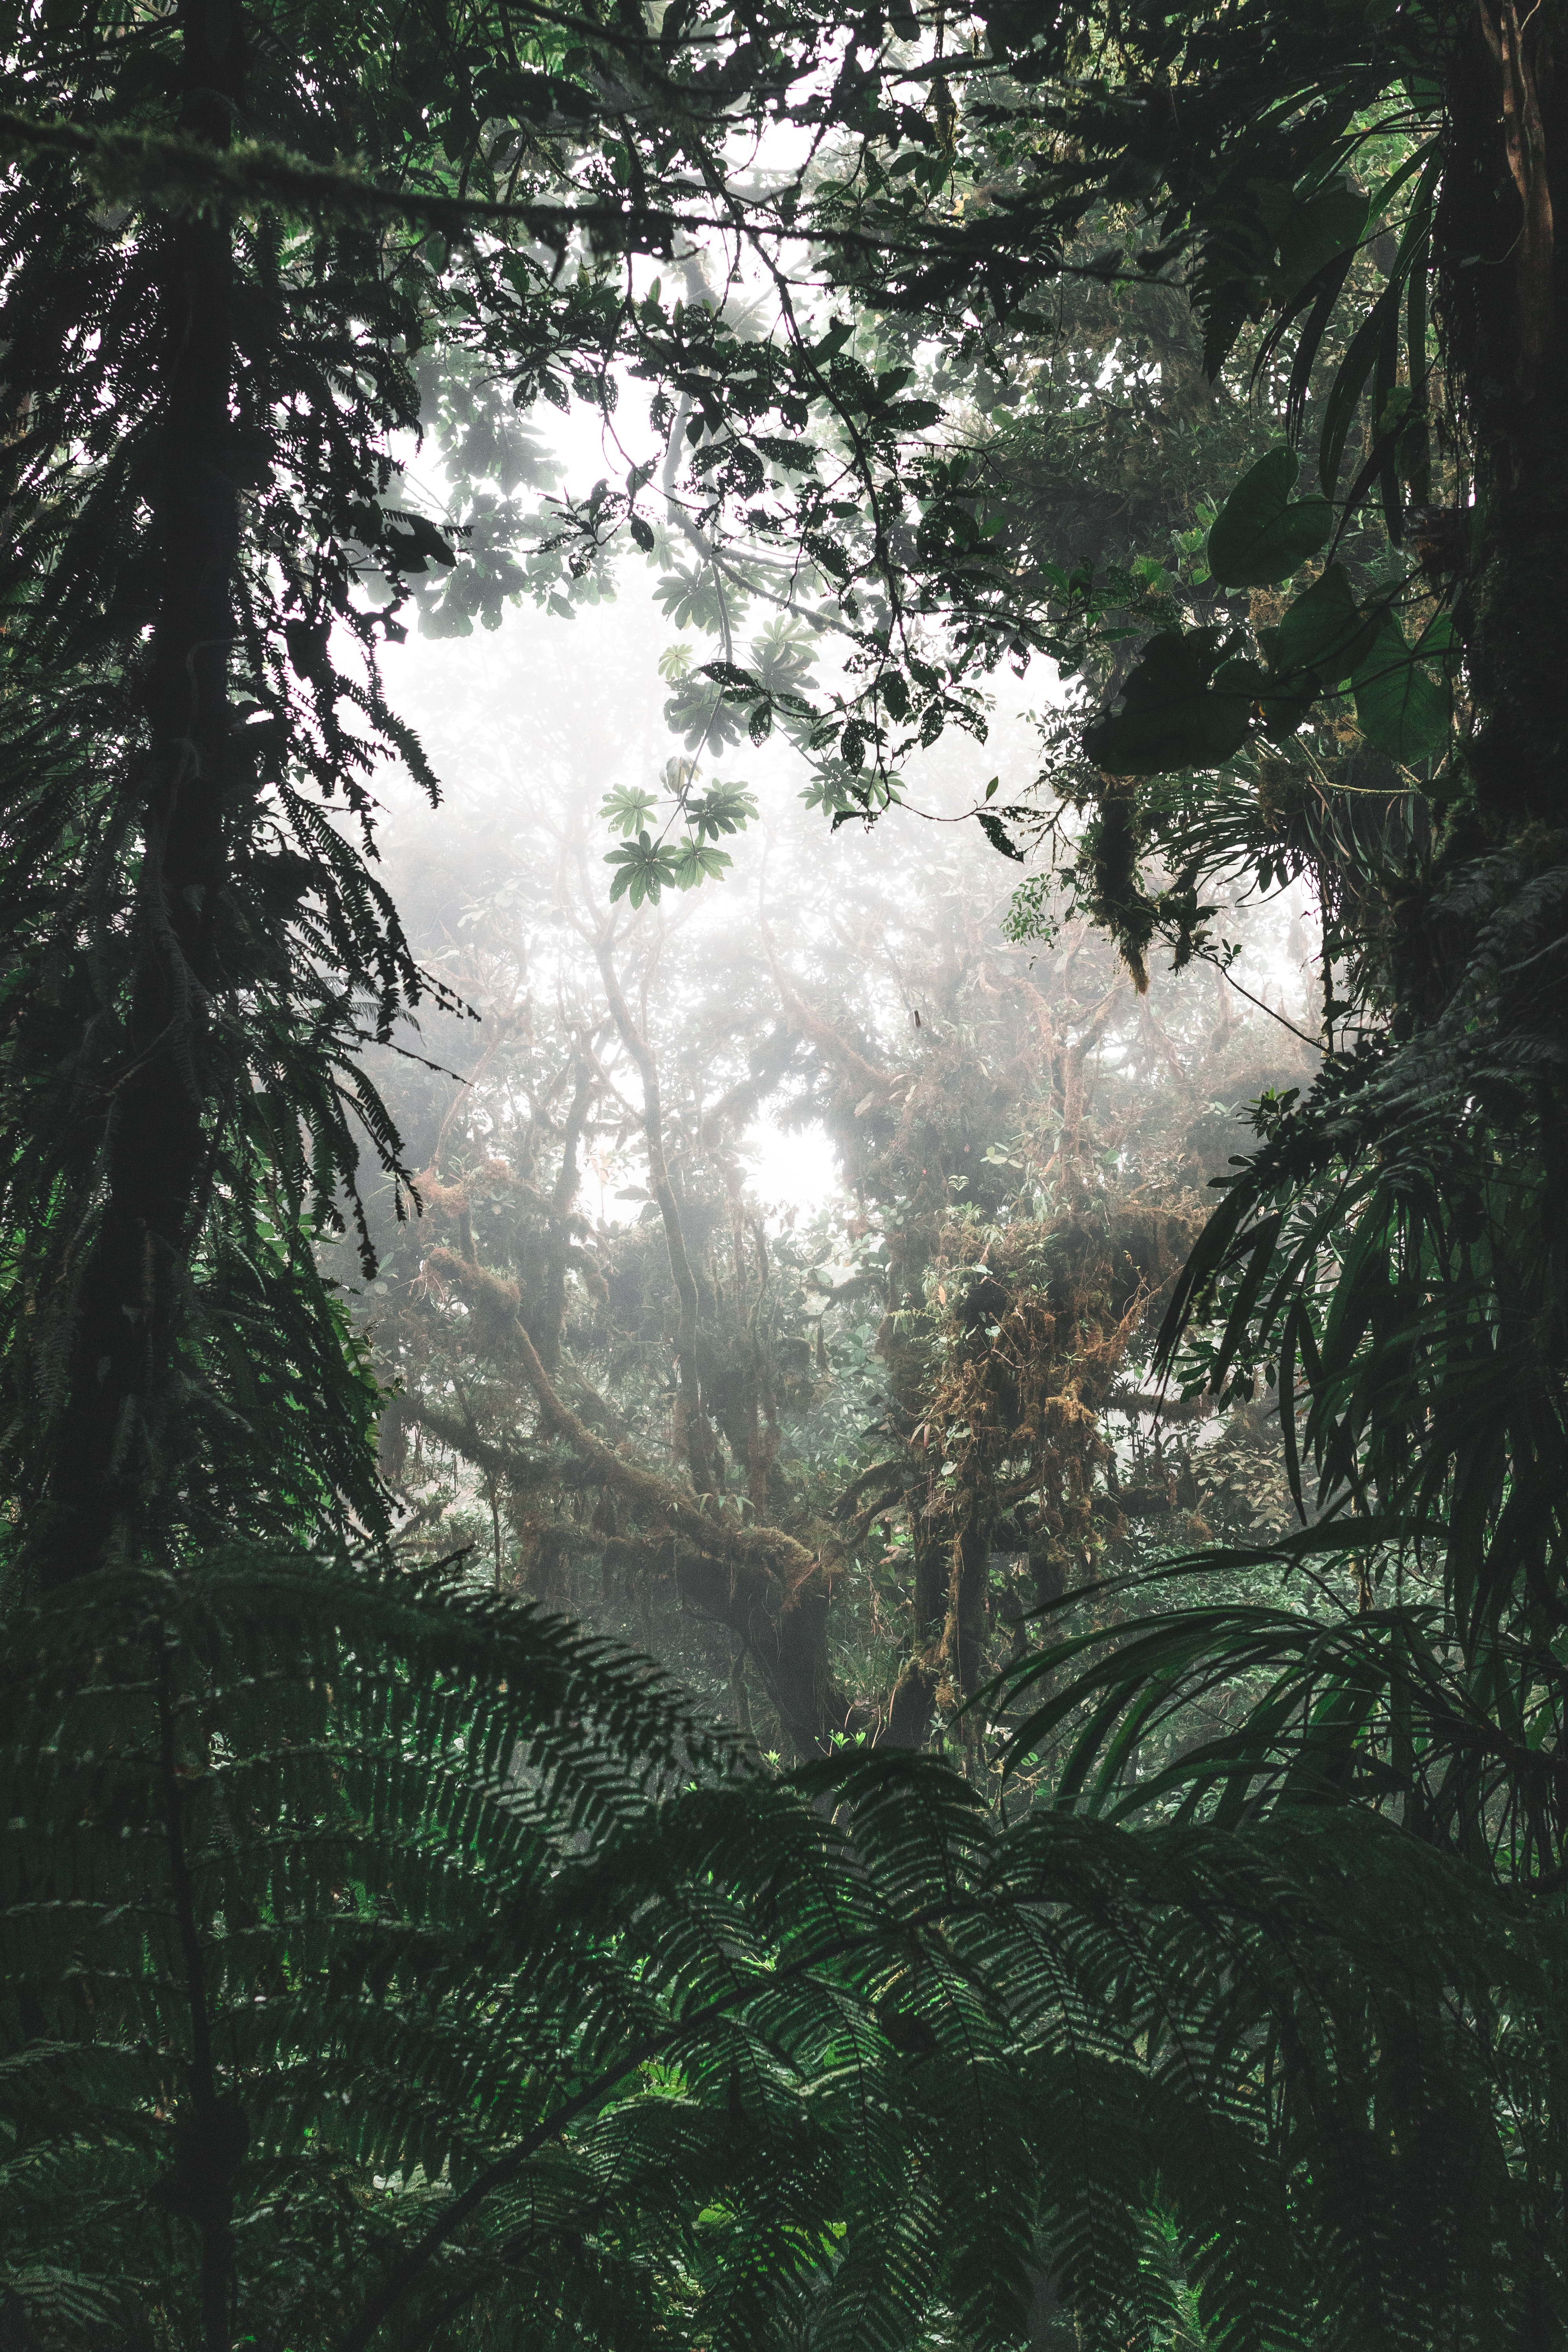 79552 download wallpaper Nature, Jungle, Forest, Fog, Trees, Tropics, Bush screensavers and pictures for free